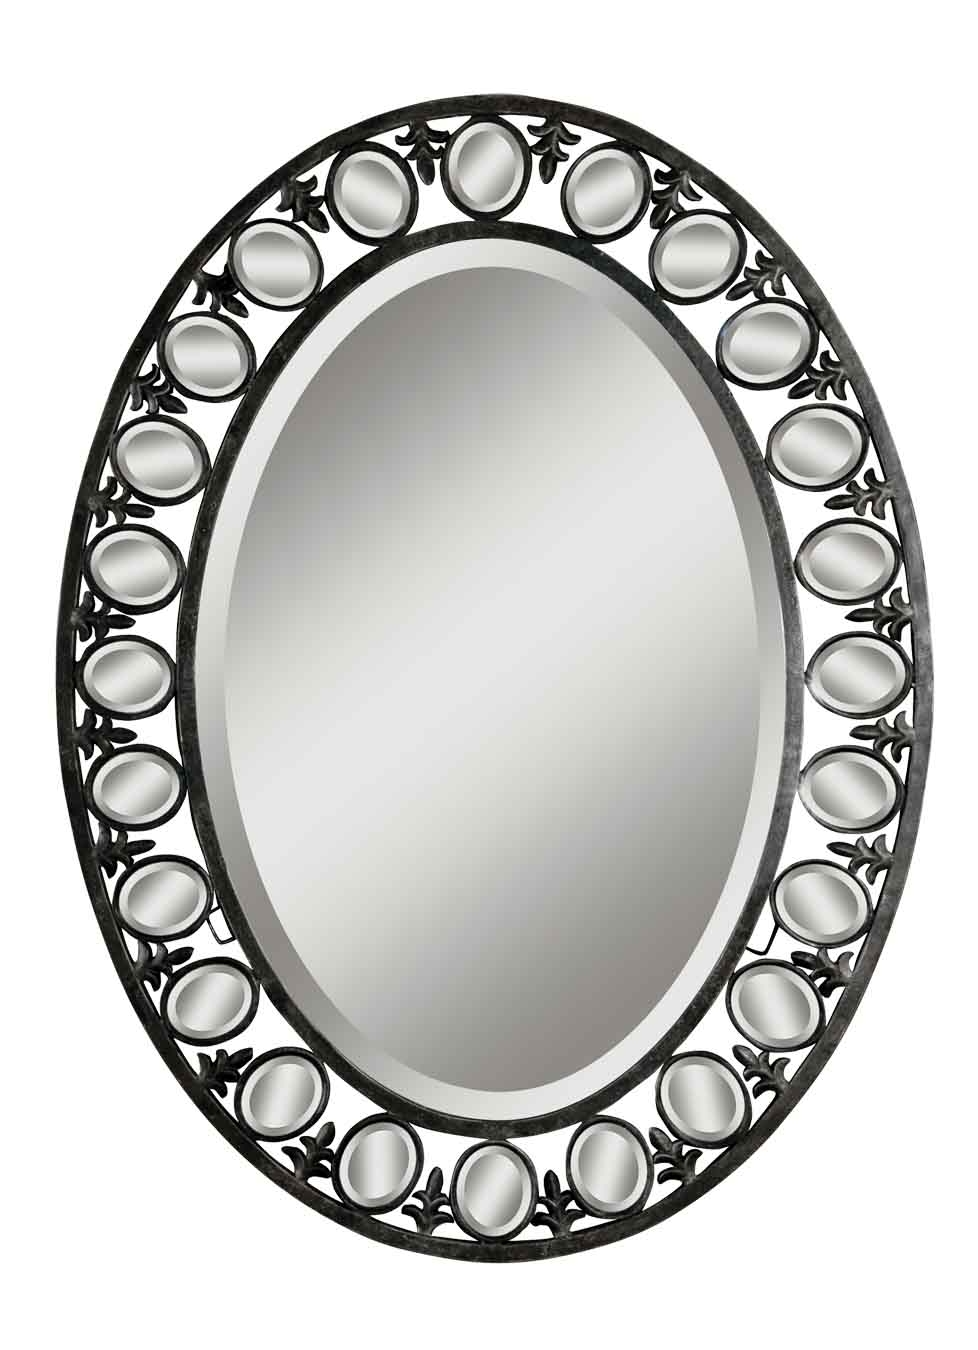 New Traditions Collection Mirror Lady Welcome To The Webs Throughout Silver Oval Mirror (Image 7 of 15)